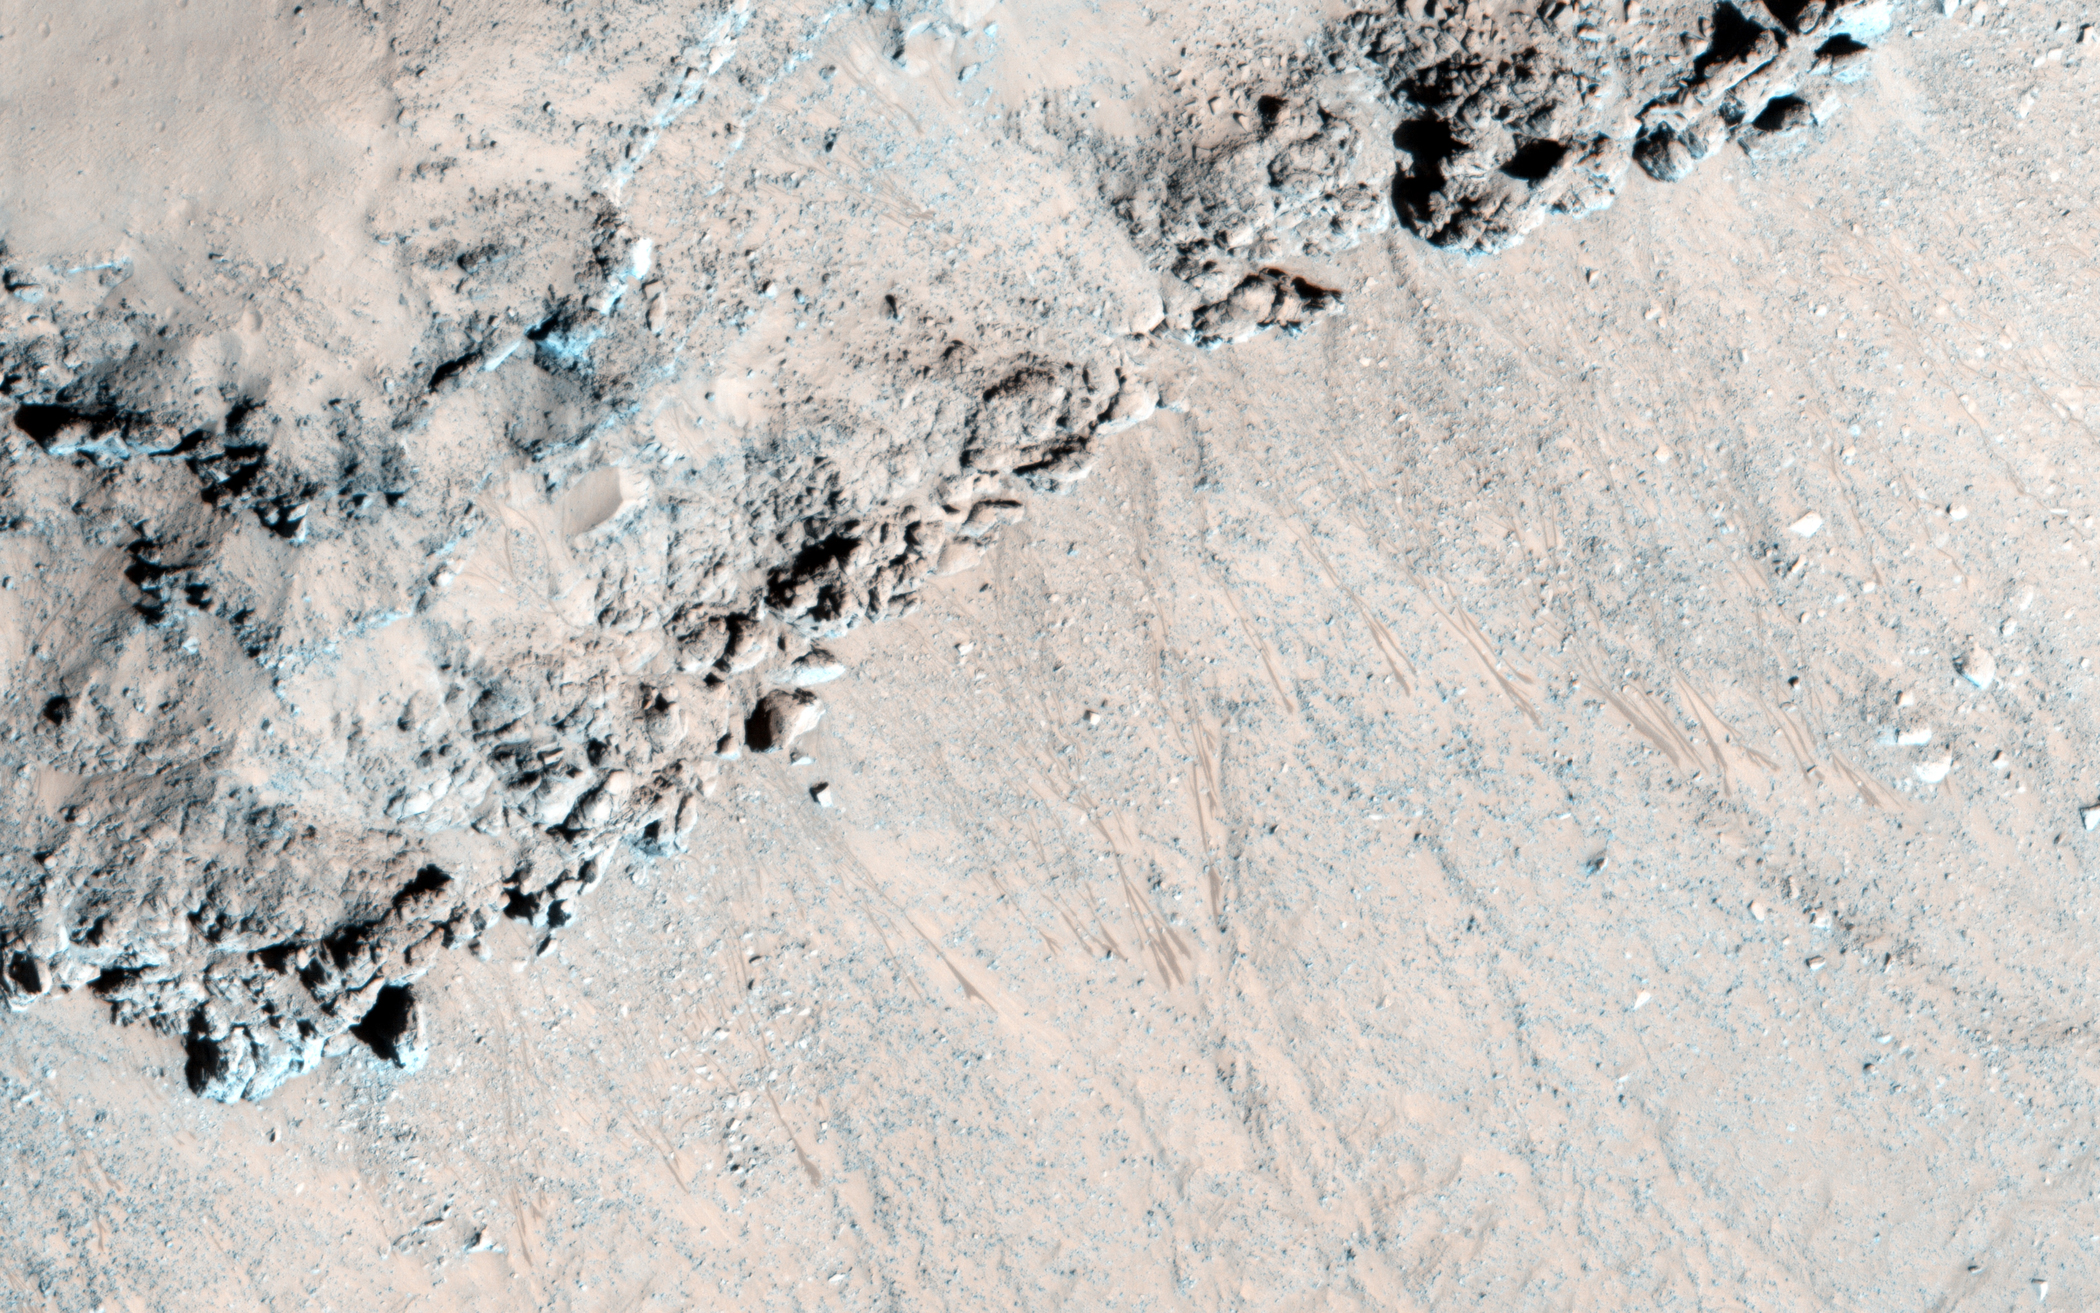 An image of the southeast rim of Hale crater, acquired on Nov. 13, 2014